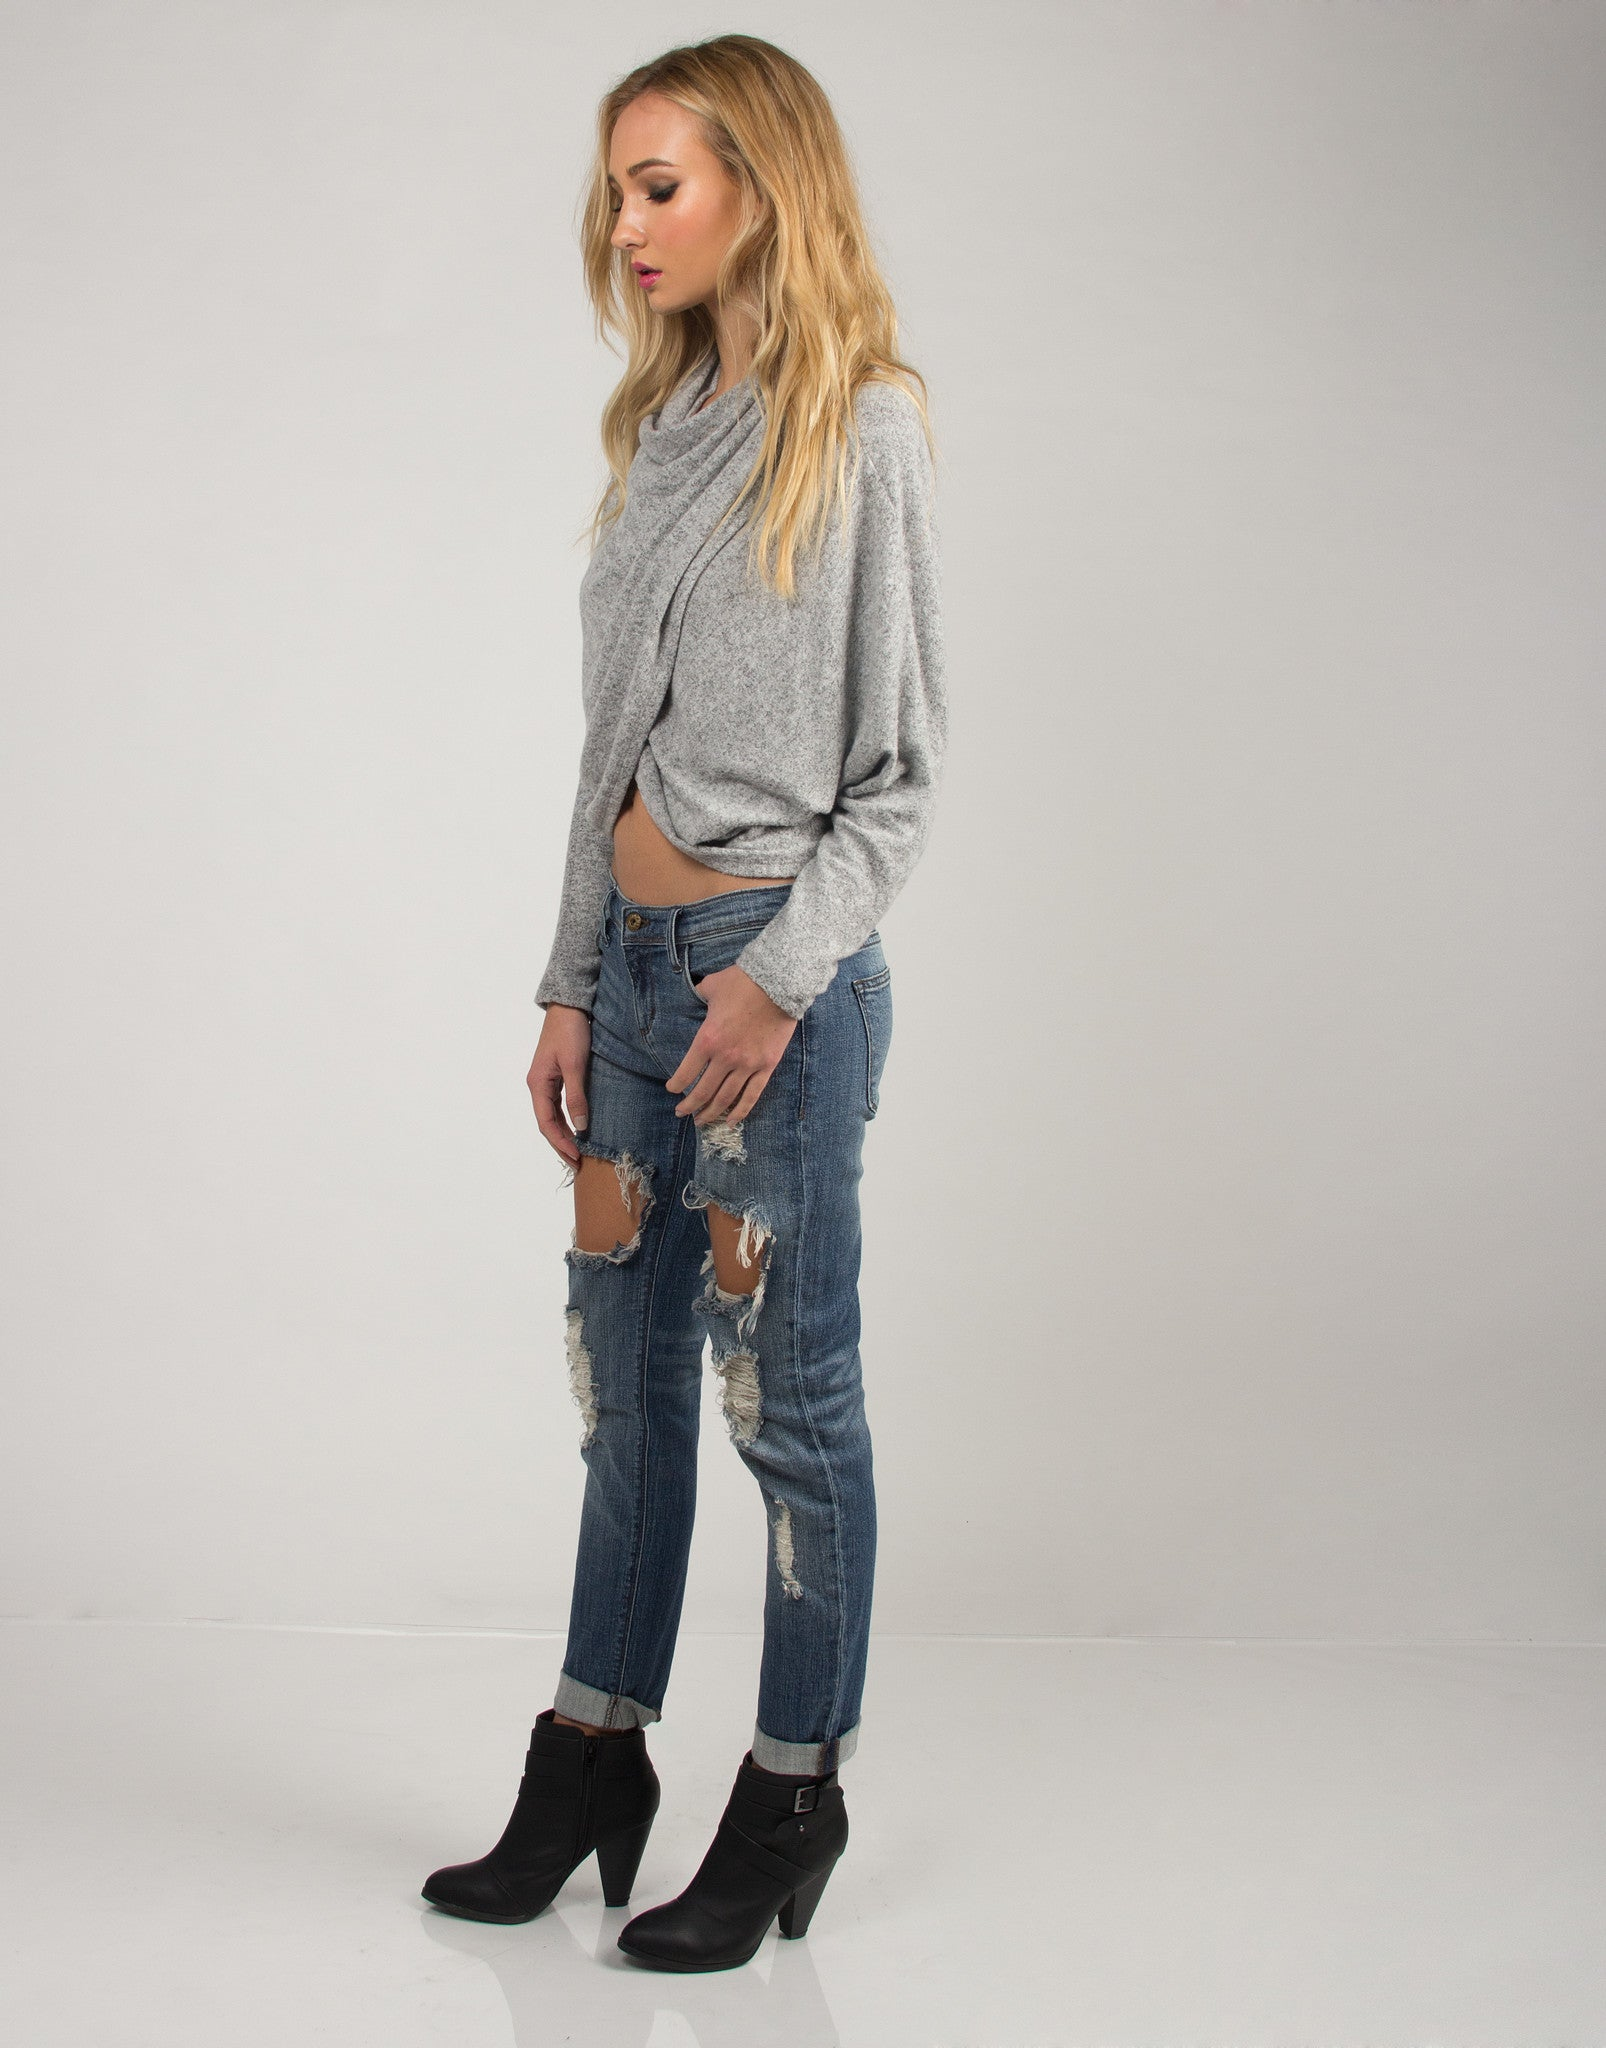 Cuffed Holey Boyfriend Jeans